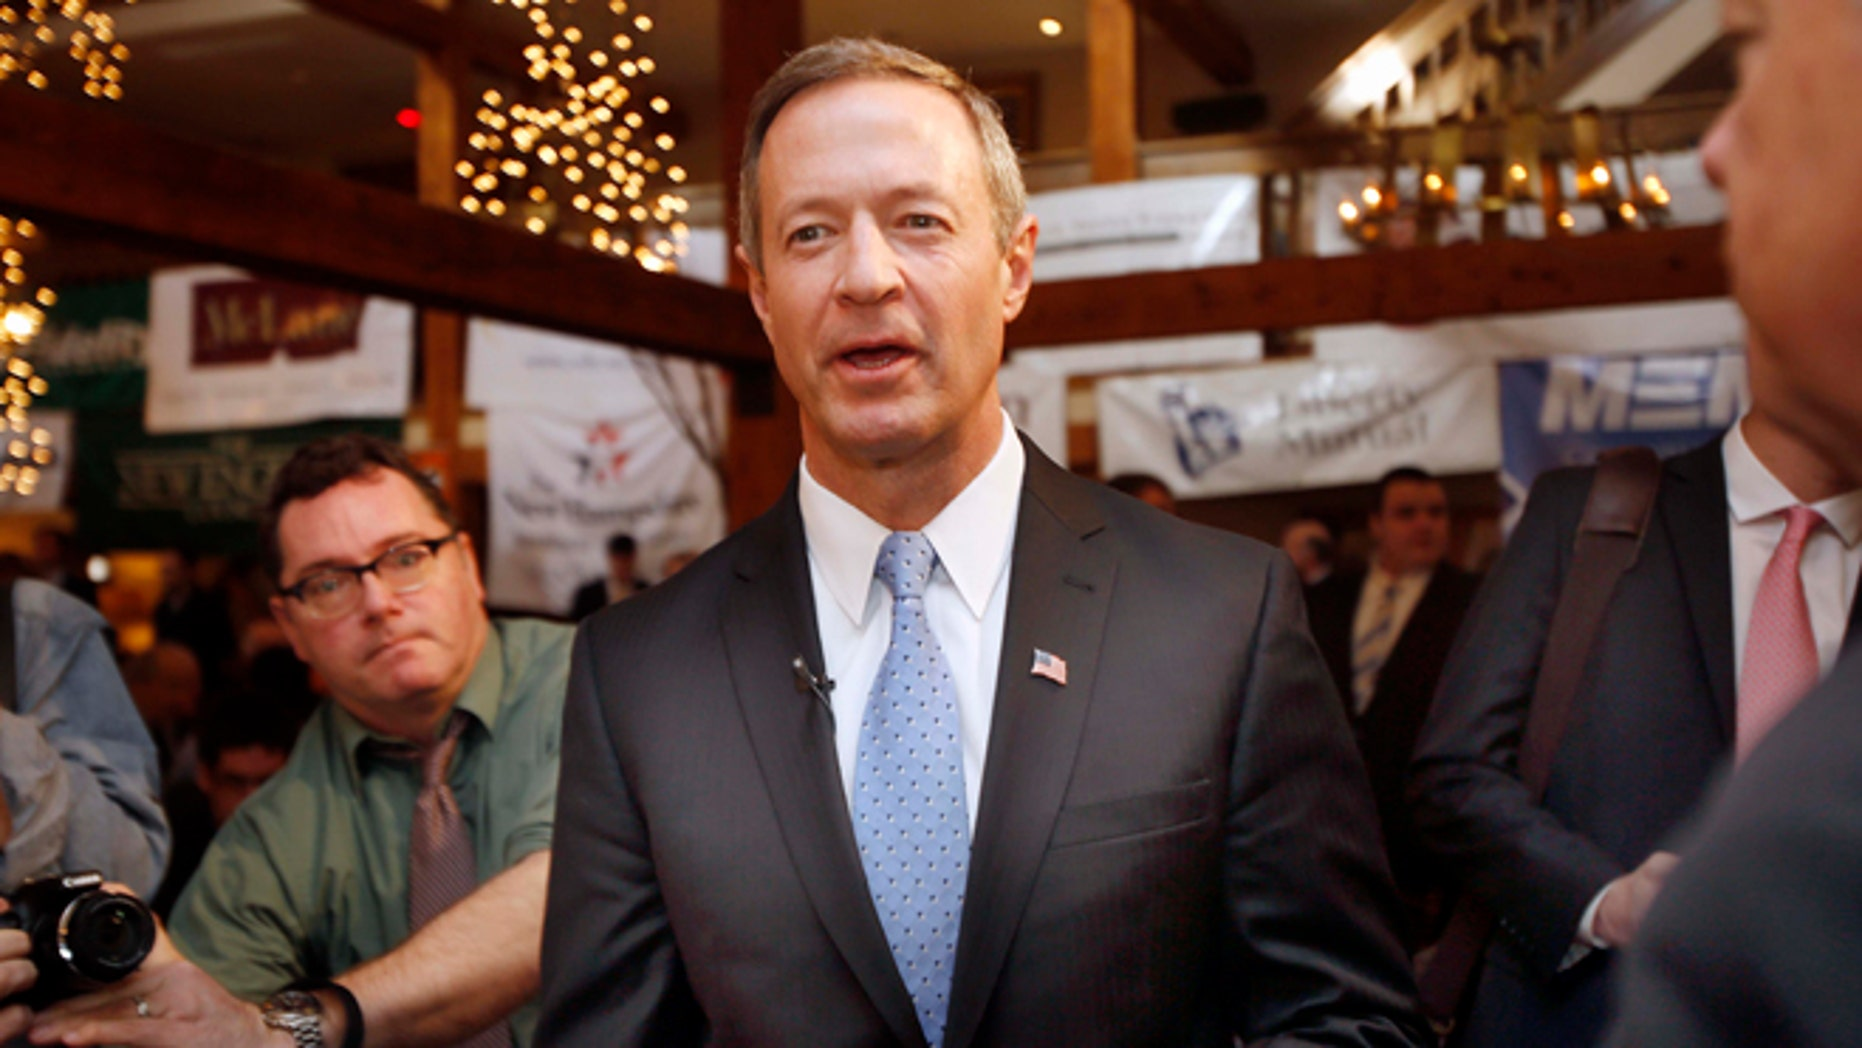 March 31, 2015: Former Maryland Gov. Martin O'Malley arrives for a Politics and Eggs breakfast with area business leaders in Bedford, N.H.